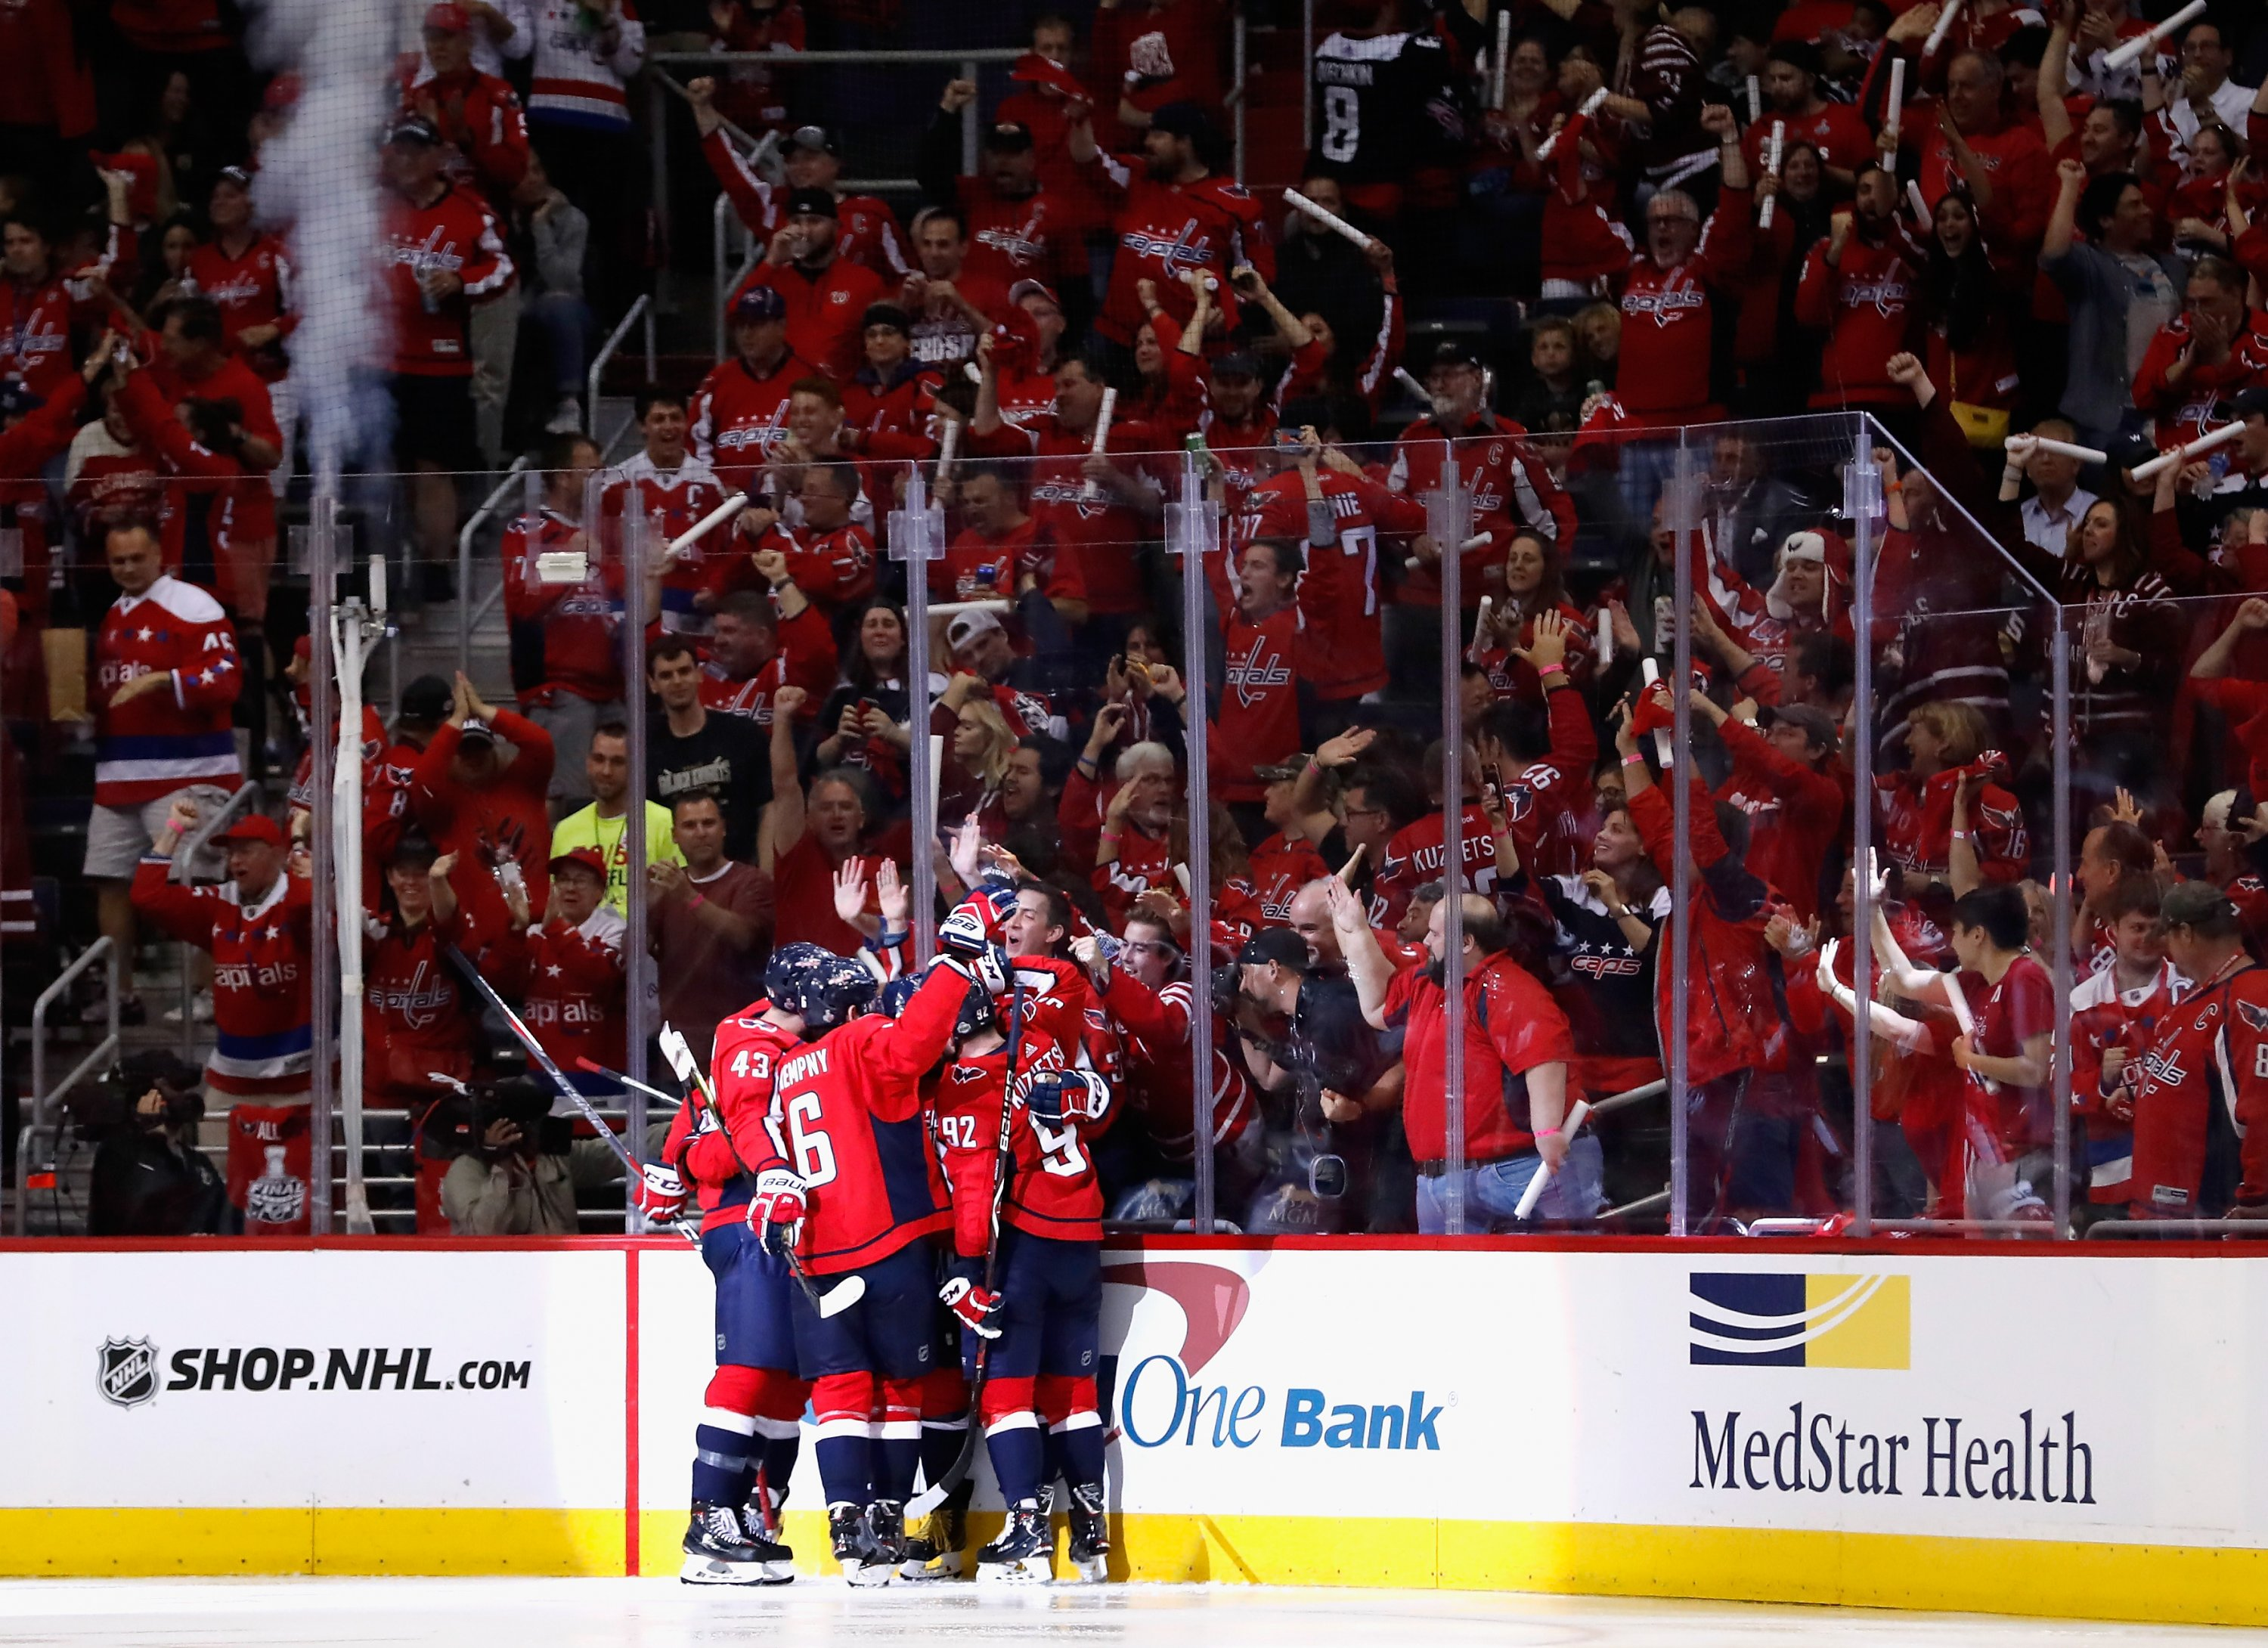 The team celebrates after scoring a goal in Game 3. Patrick  McDermott Washington Capitals Photography. d5d3cfa55